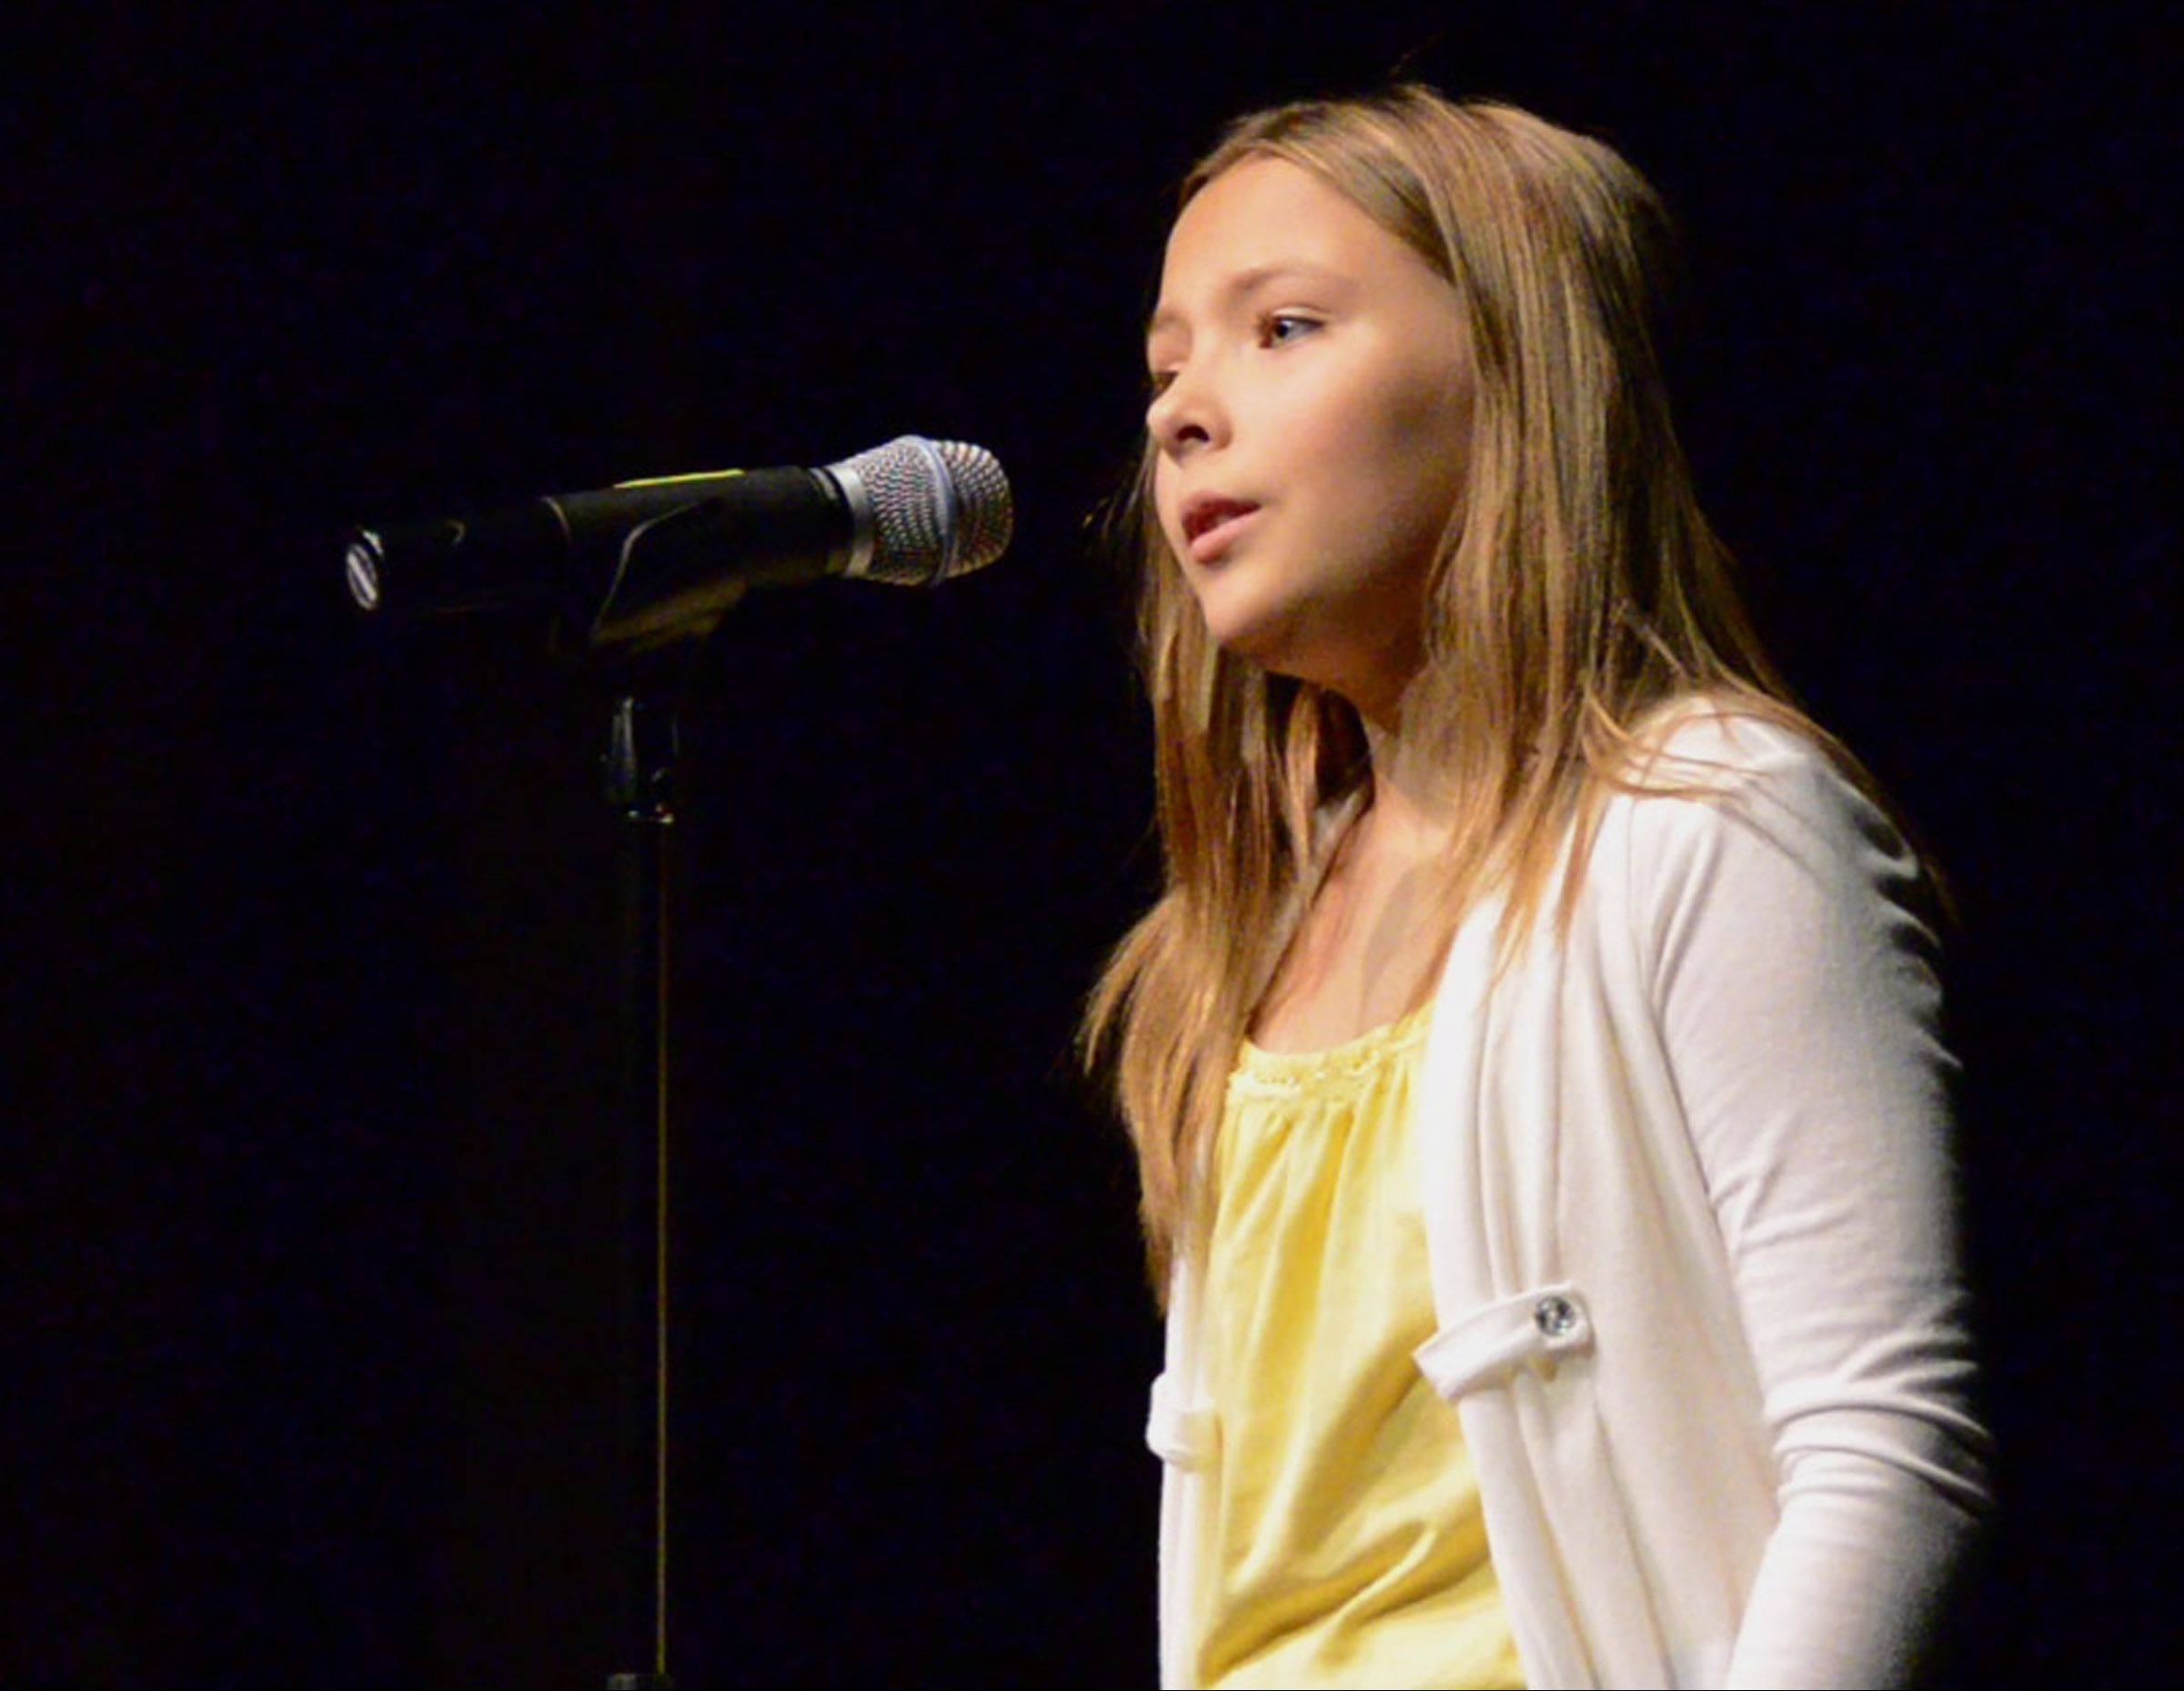 Agne G, 10, of Downers Grove, is one of 10 finalists in Suburban Chicago�s Got Talent. Voting conludes Friday at noon.